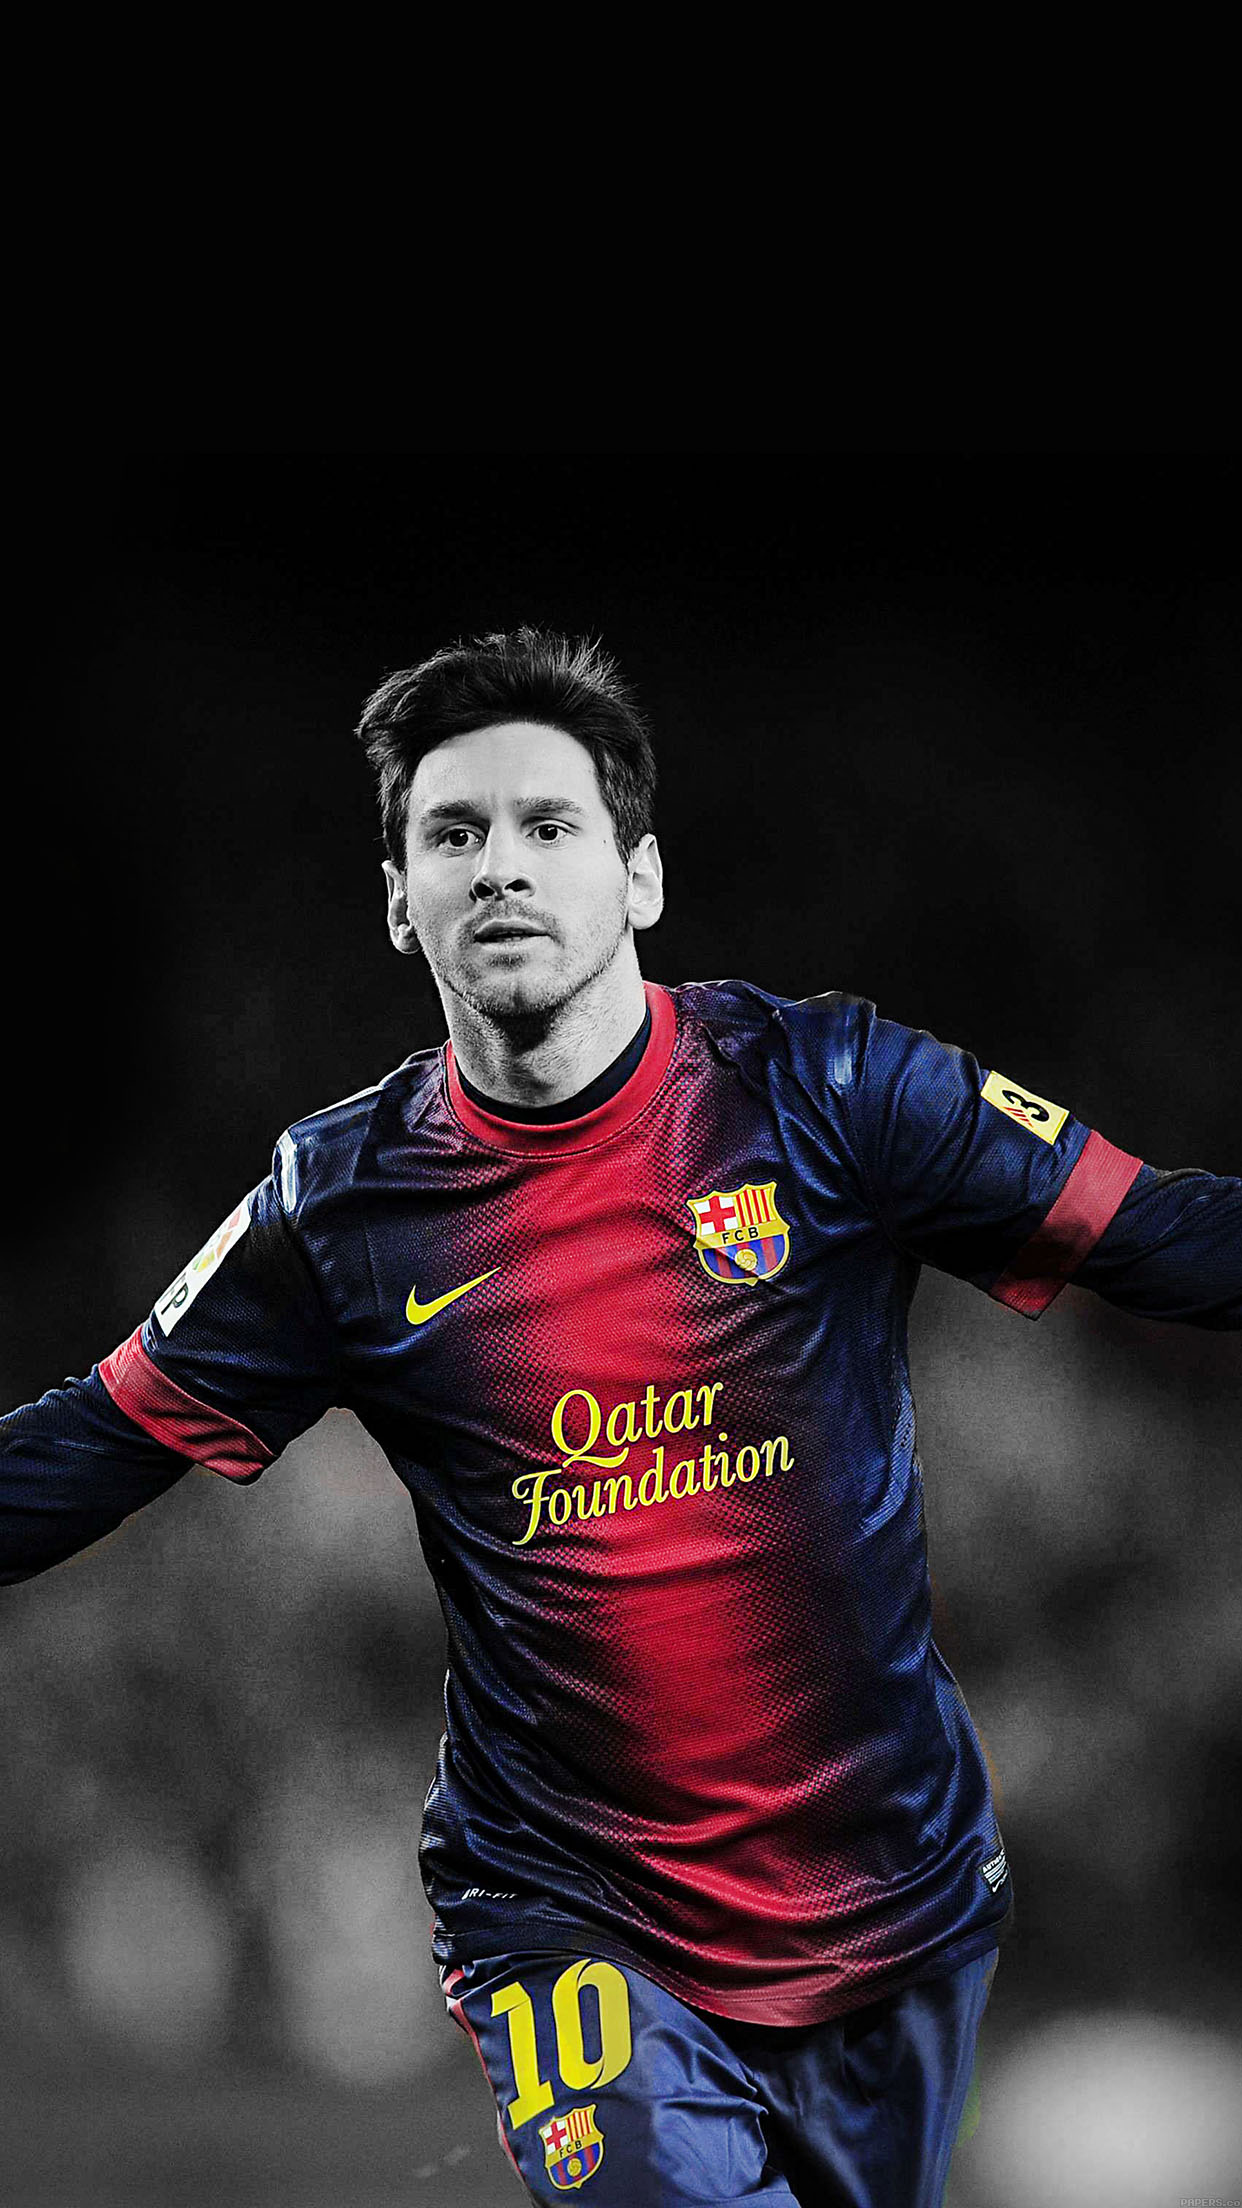 Wallpaper Messi Soccer Barcelona Sports Android Wallpaper